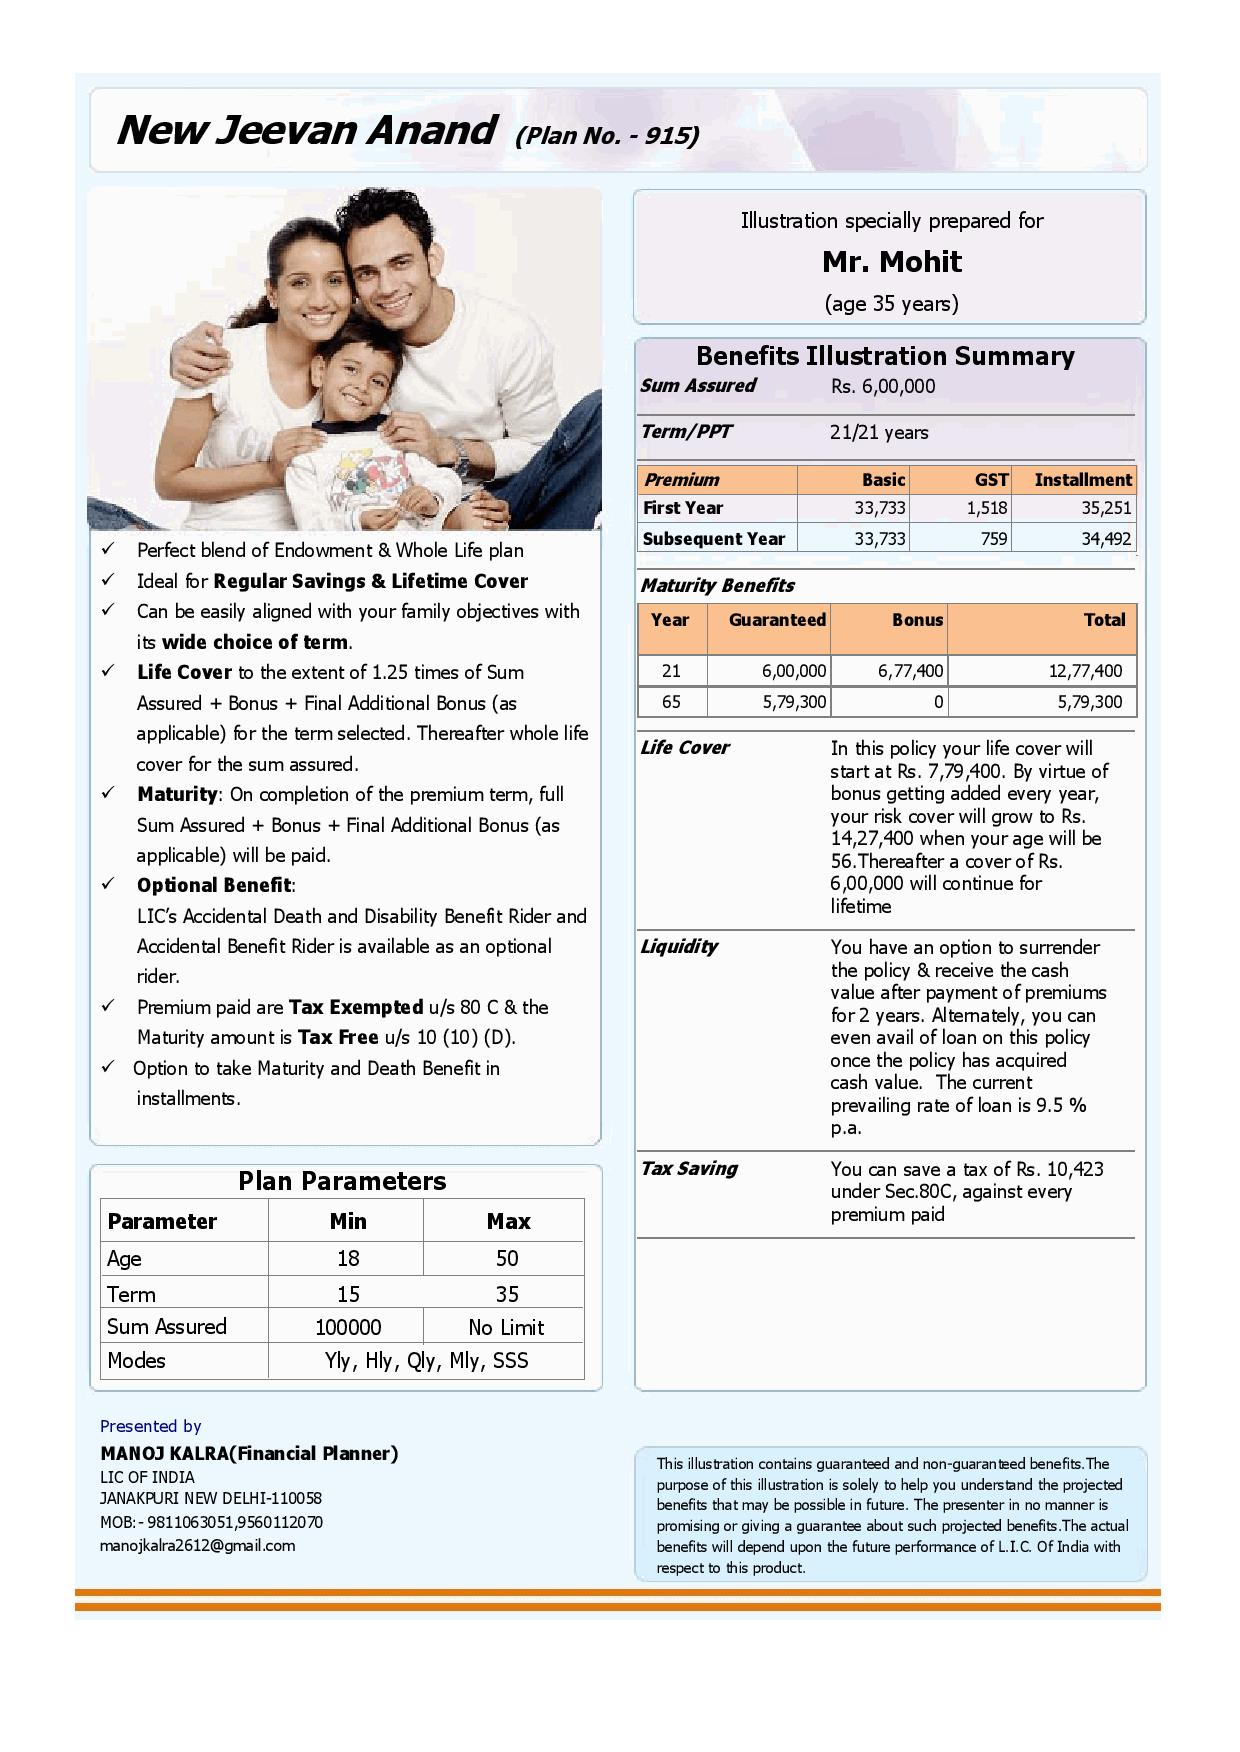 New Jeevan Anand (Plan No. - 915) | LIC Policy